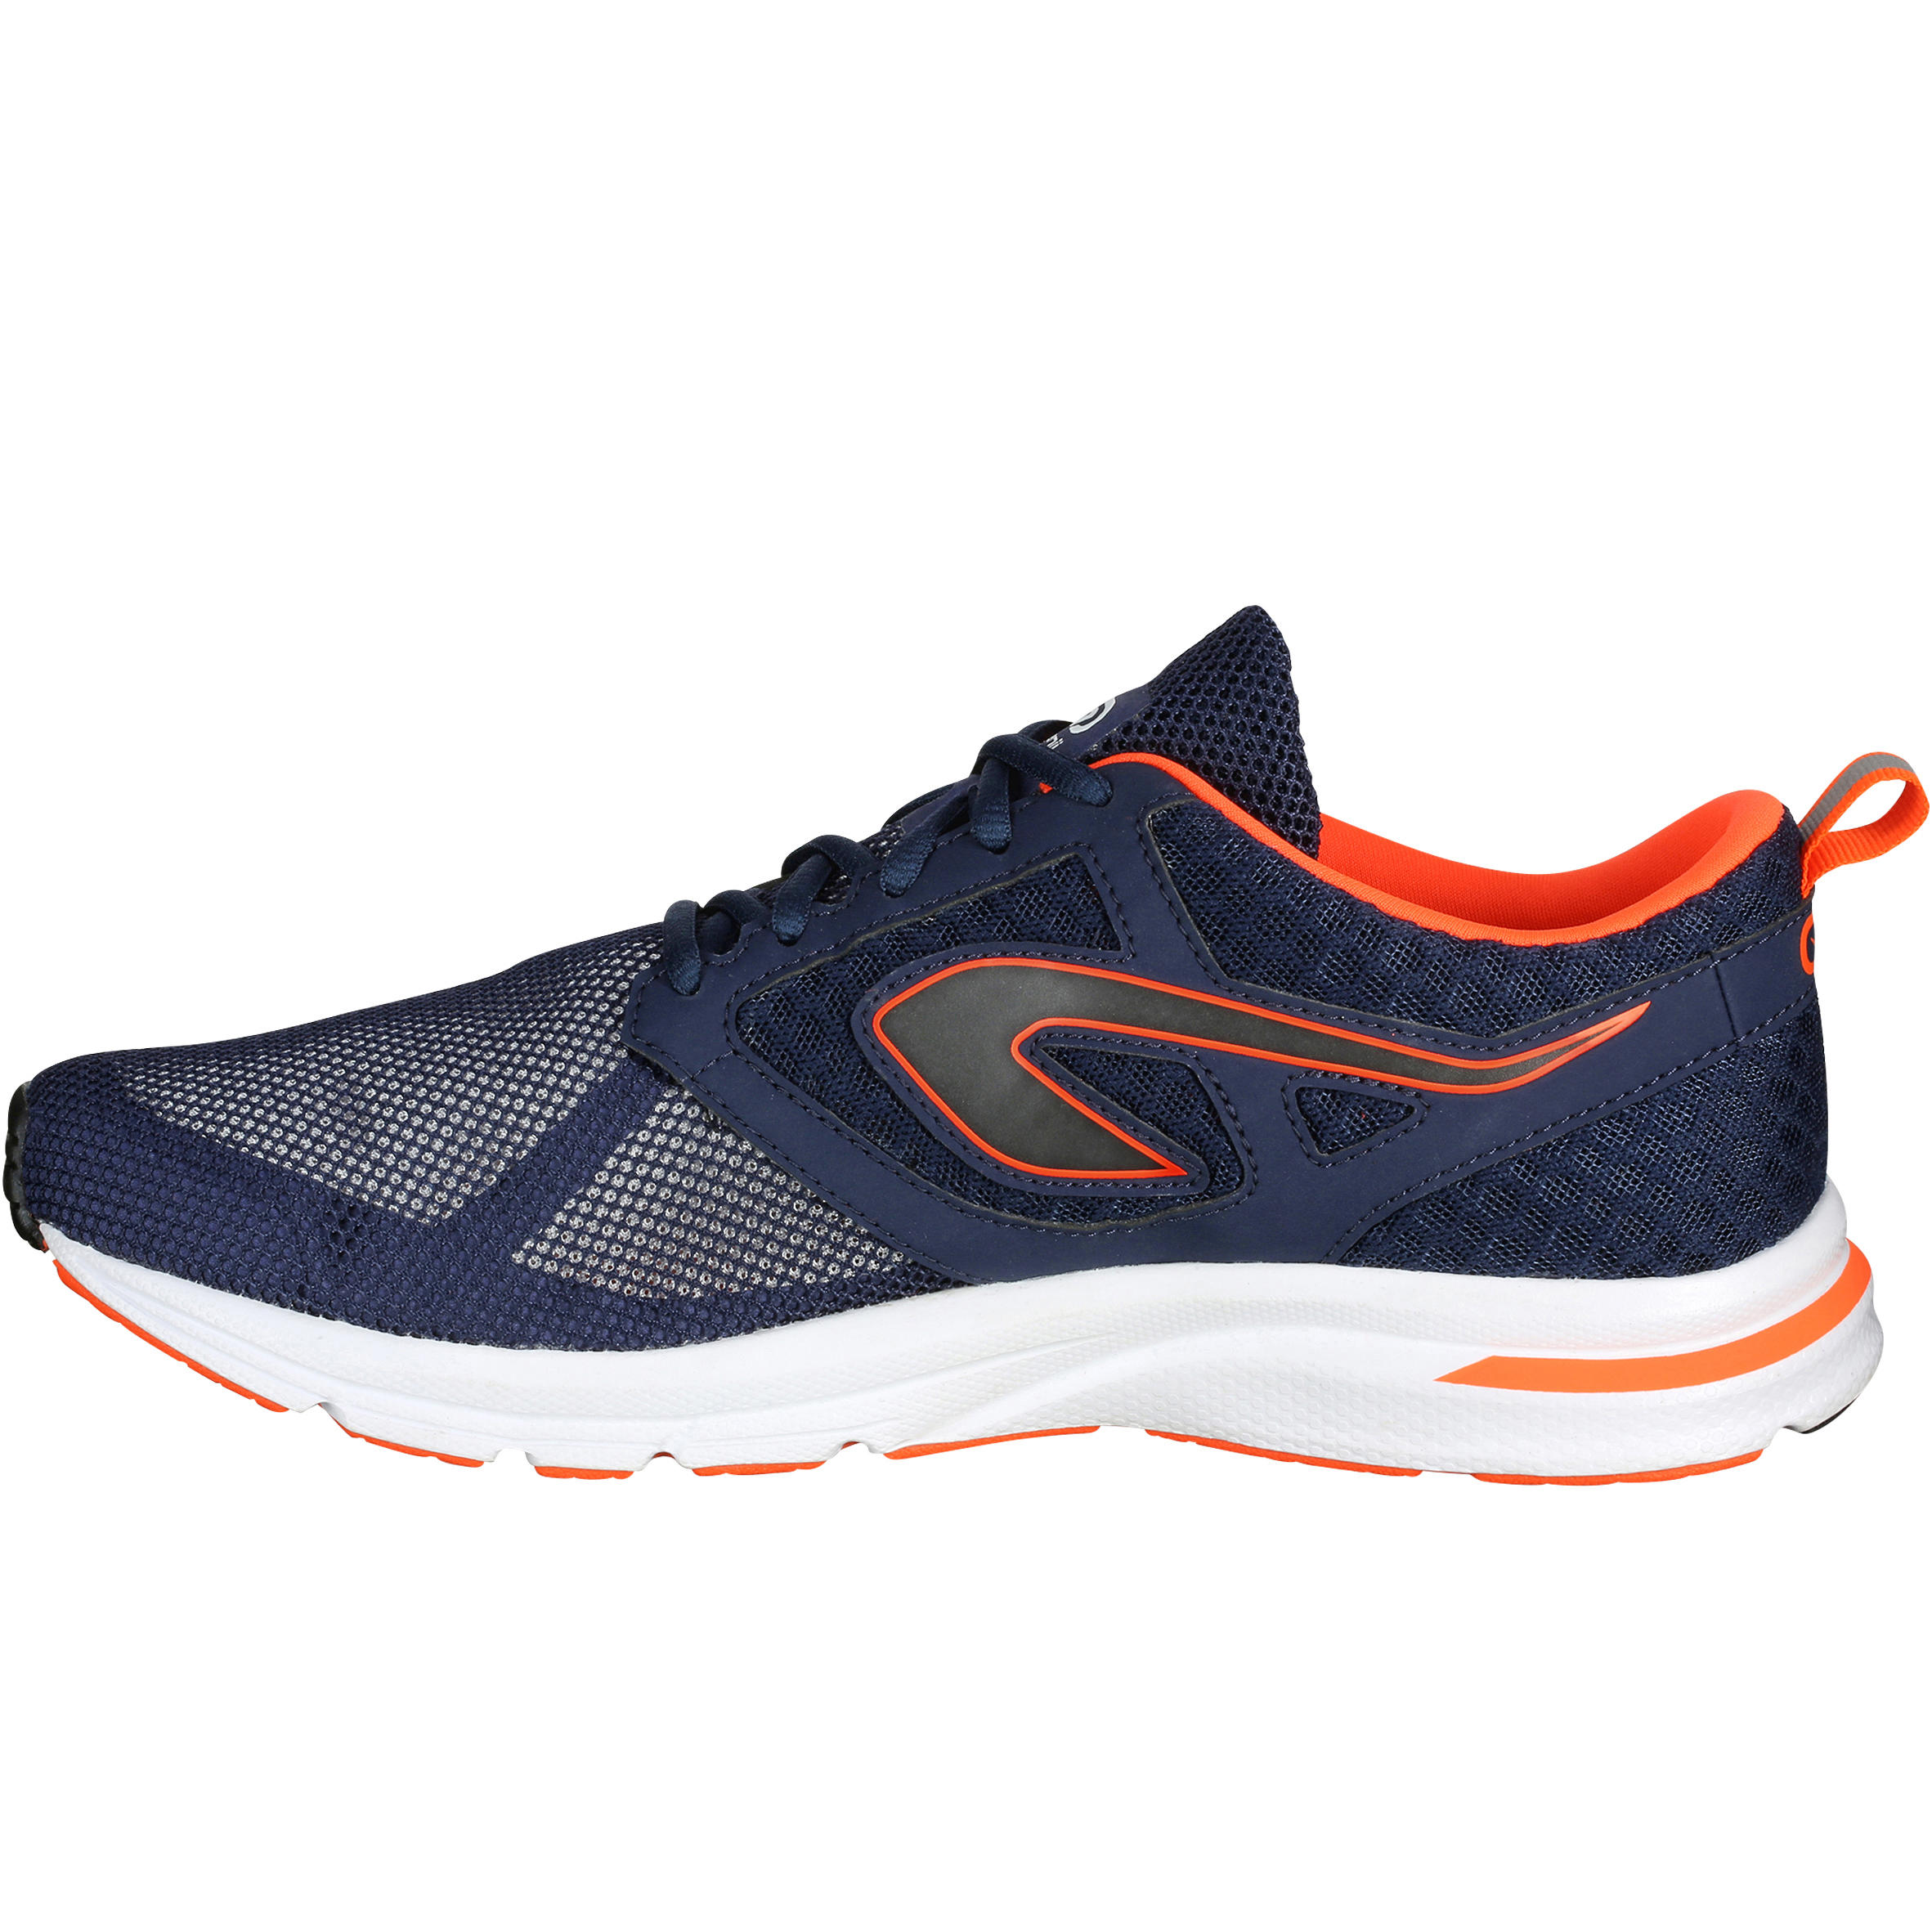 ACTIVE BREATH MEN'S RUNNING SHOES - BLUE [RATING: 4.2 ★]